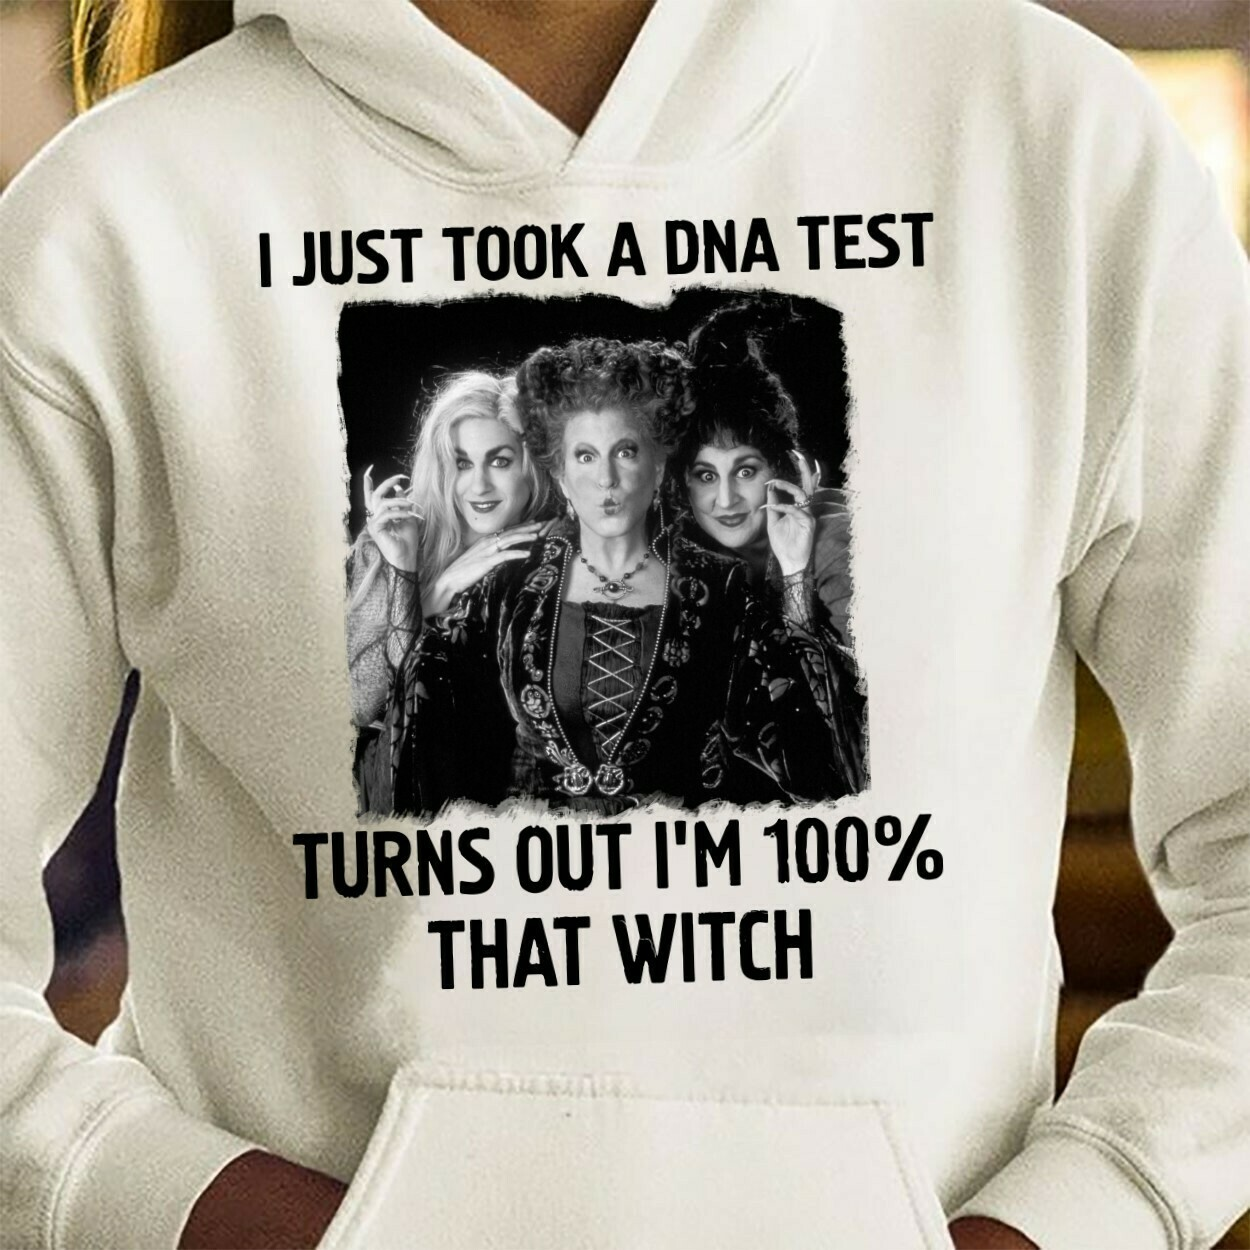 I Just Took A DNA Test Turns Out I'm 100% That Witch Bad Girls Have More Fun Walt Disney World Disneyland Park Vacation T Shirt Long Sleeve Sweatshirt Hoodie Jolly Family Gifts